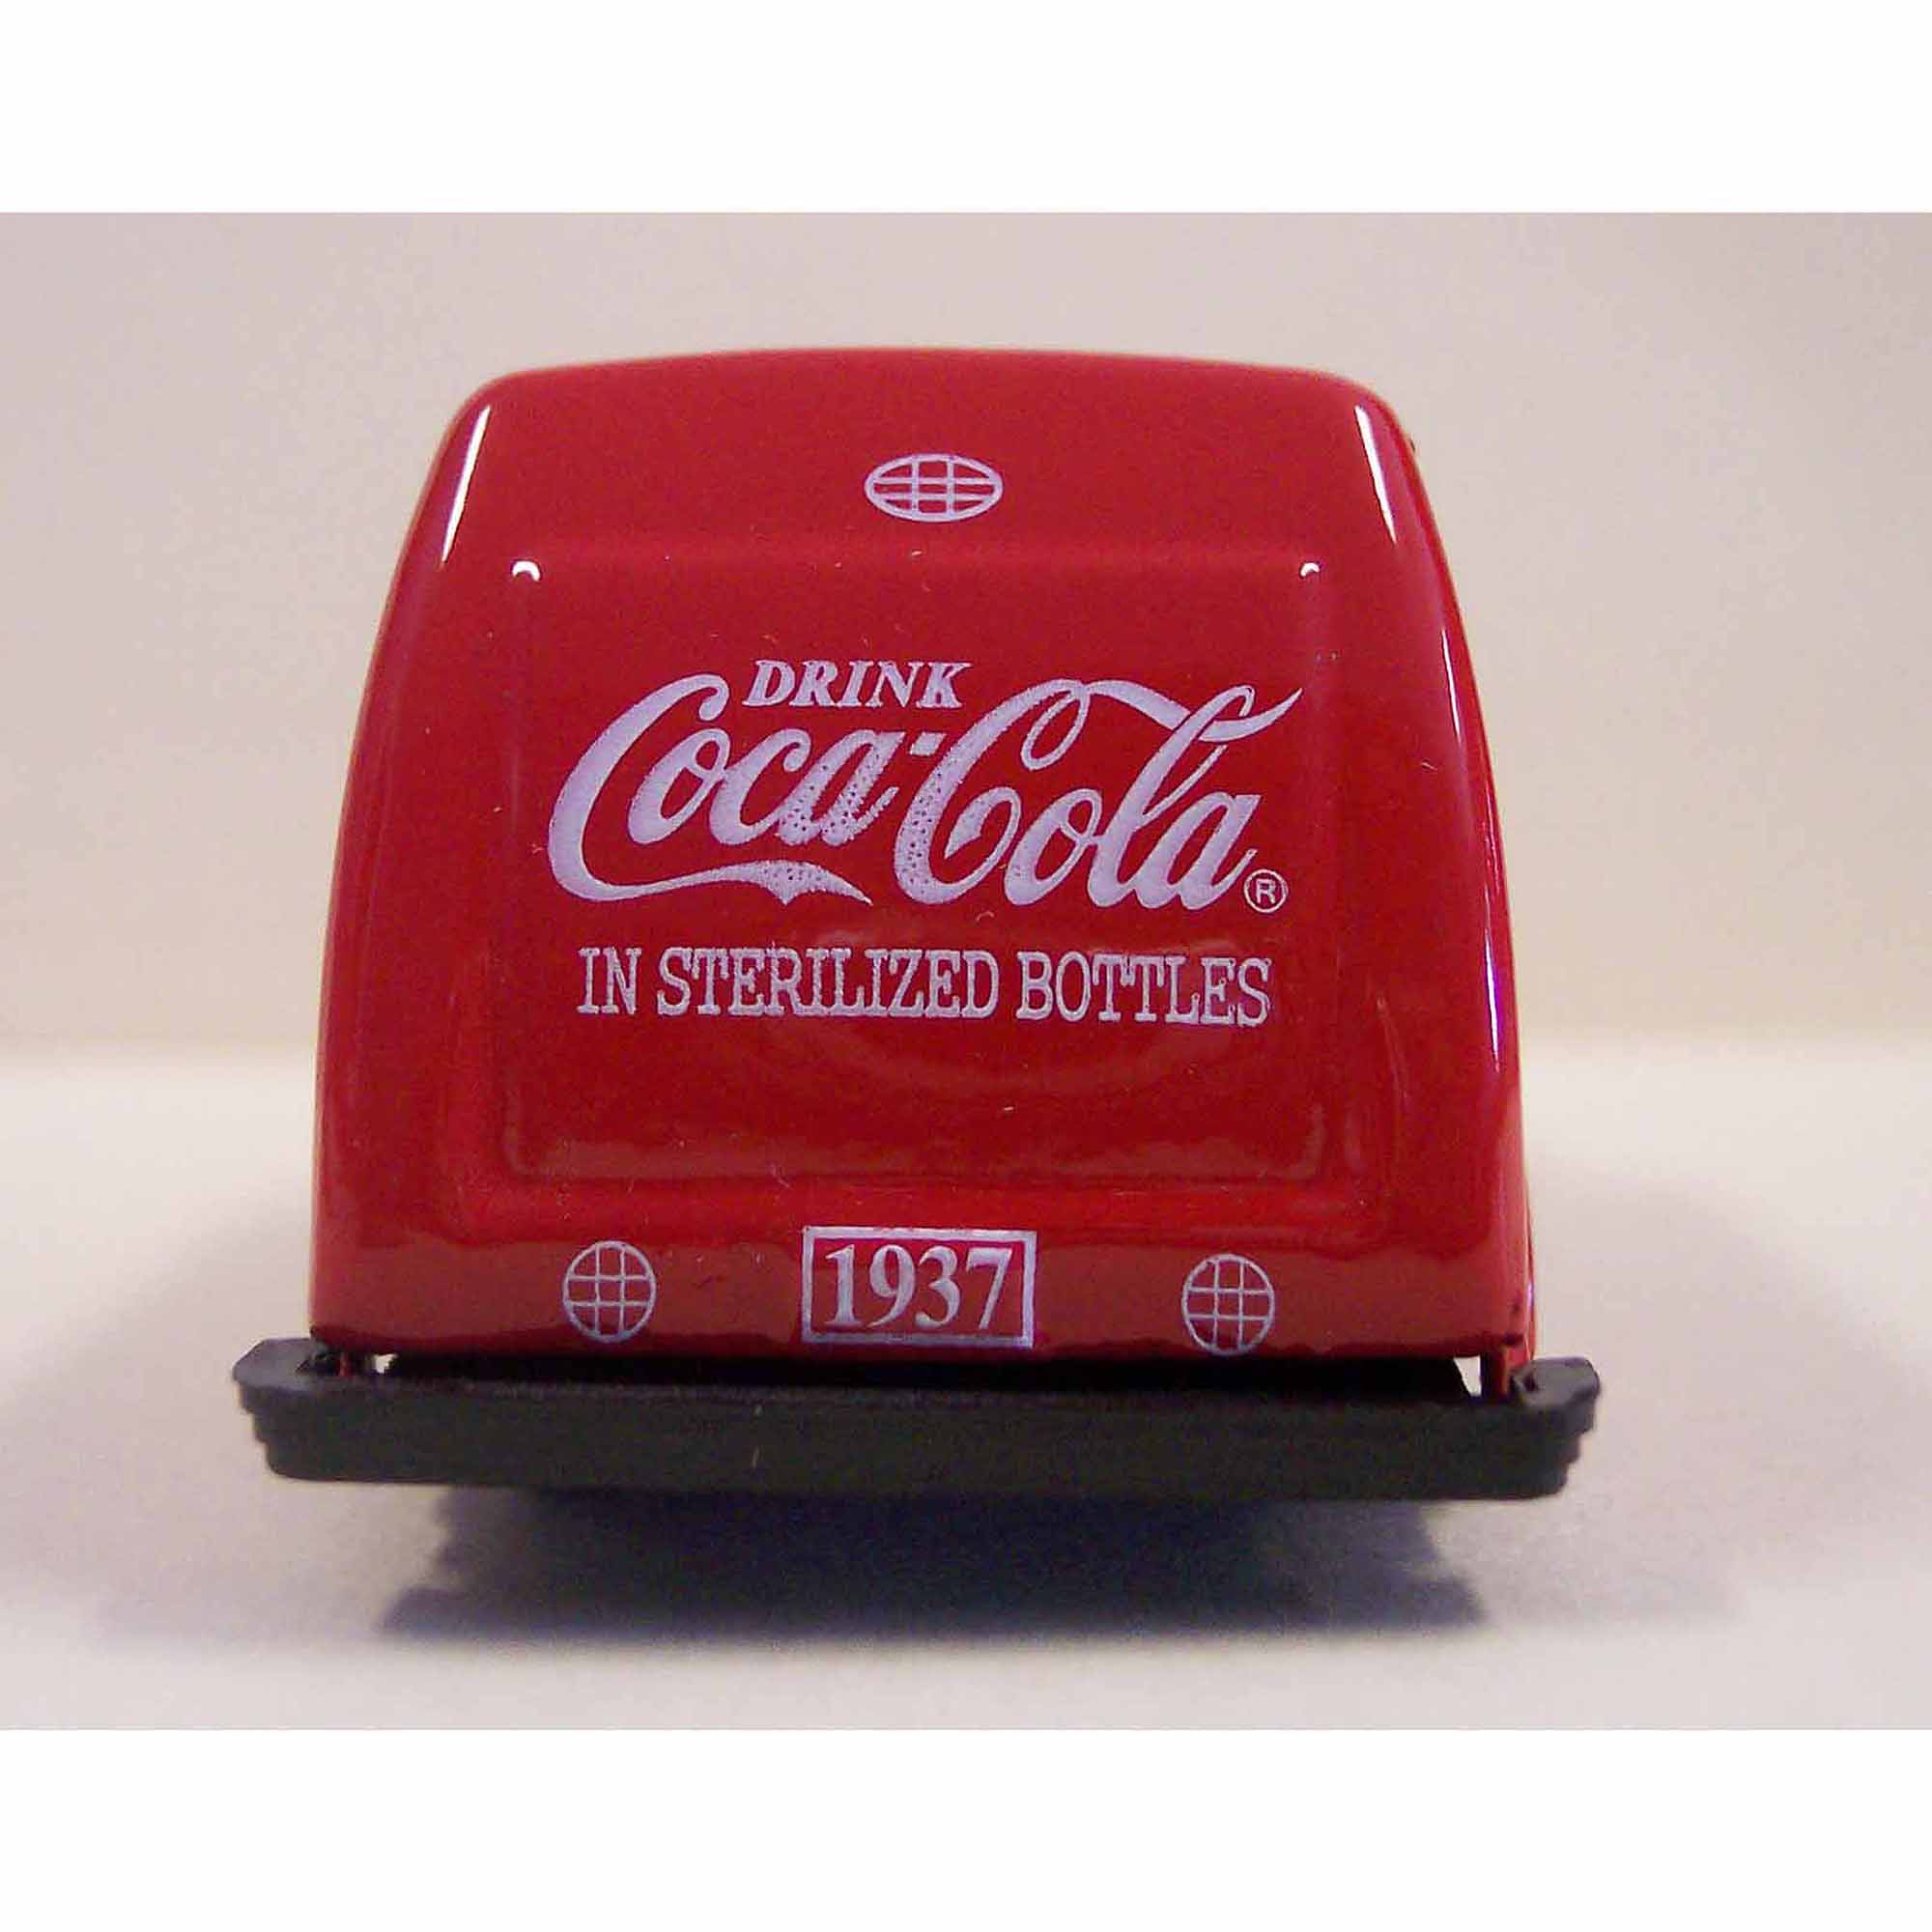 1:87 Scale 1937 Coca, Cola Bottle Truck, Red